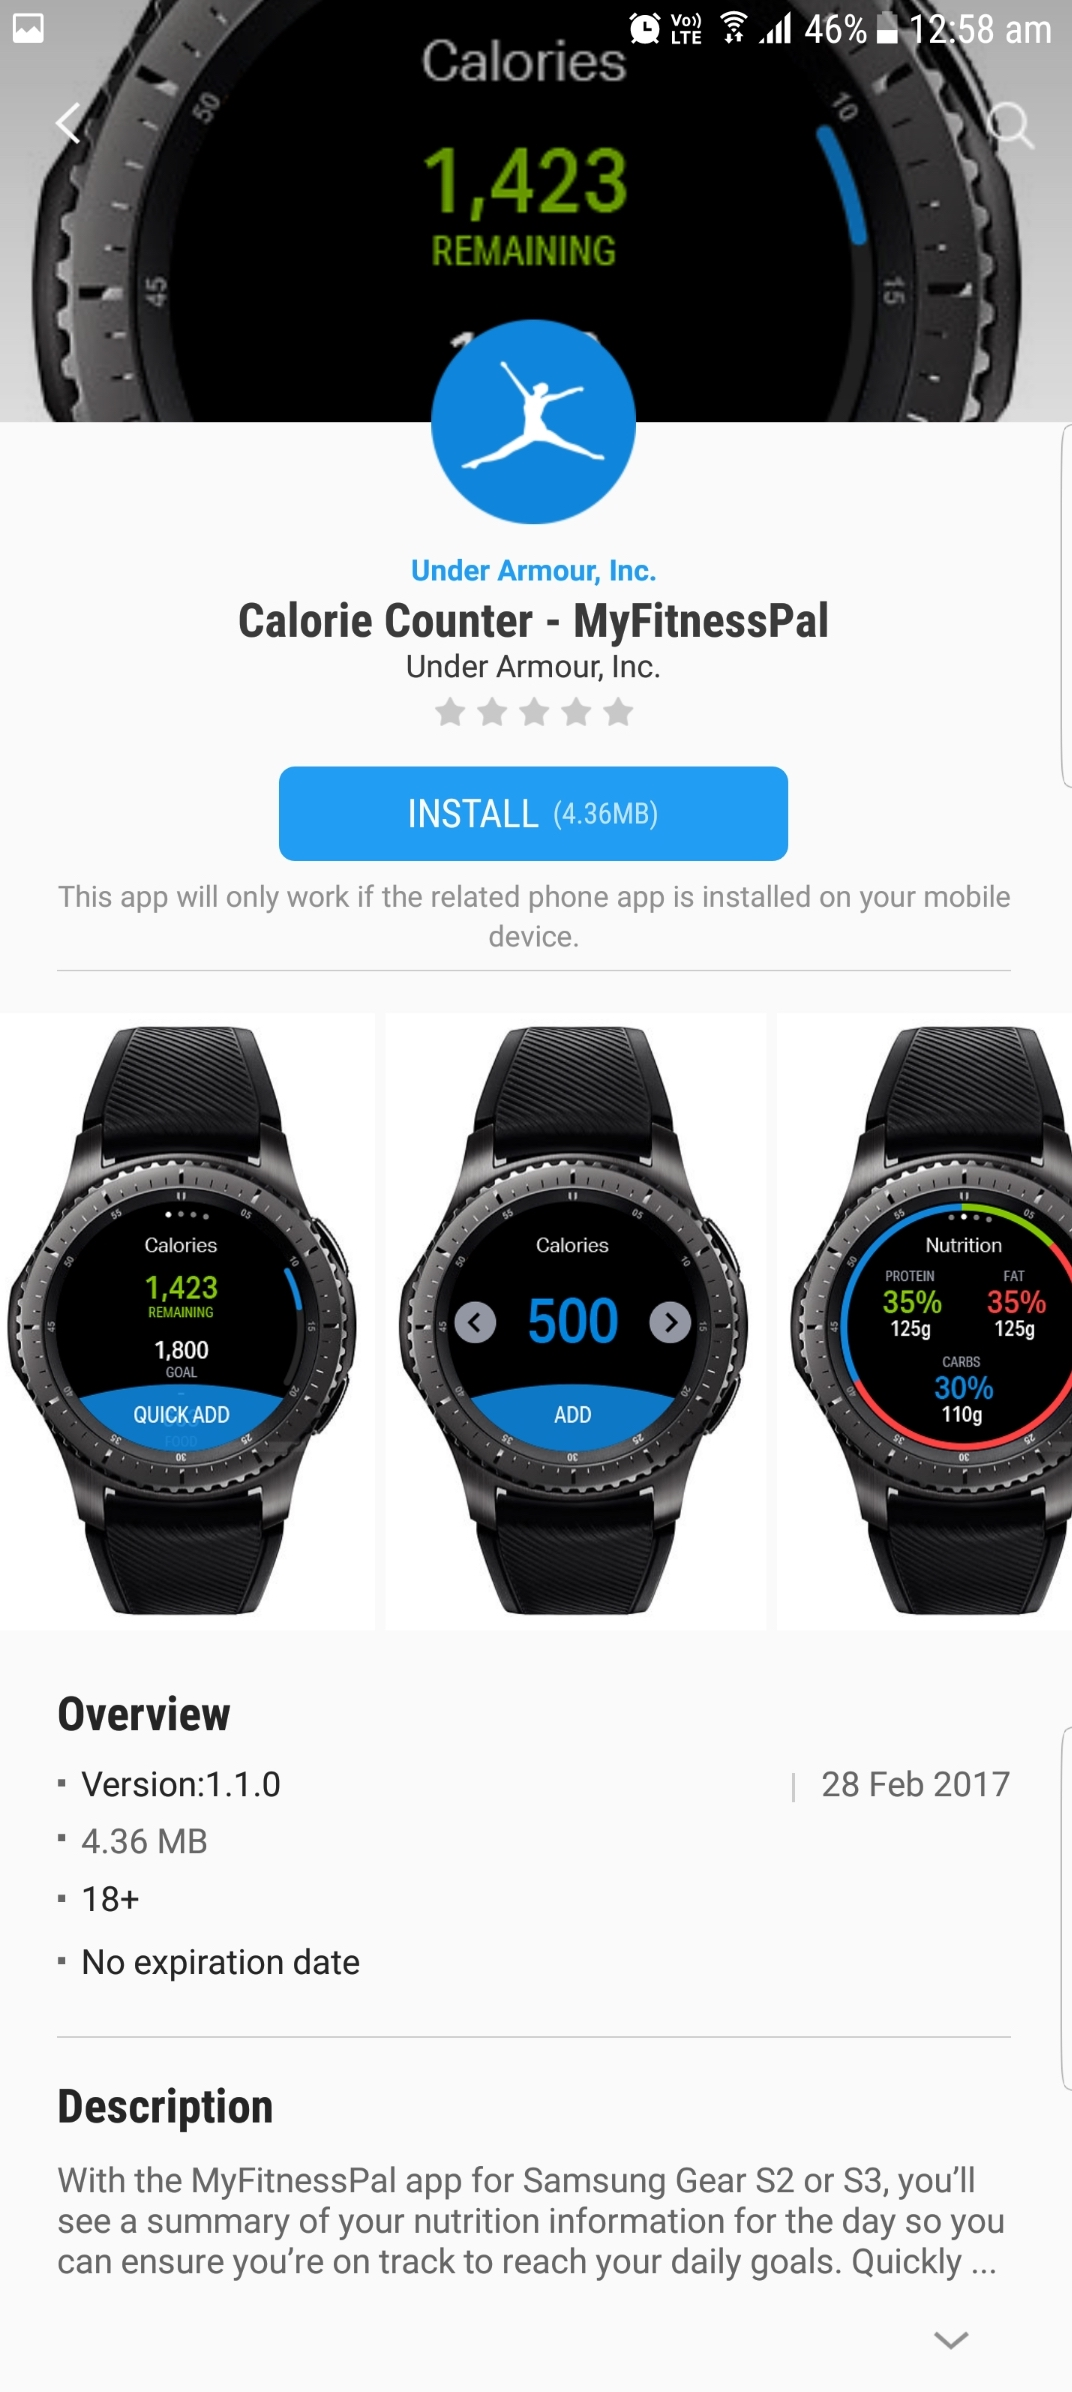 Calorie-Counter-MyFitnessPal-Samsung-Gear-S2-S3